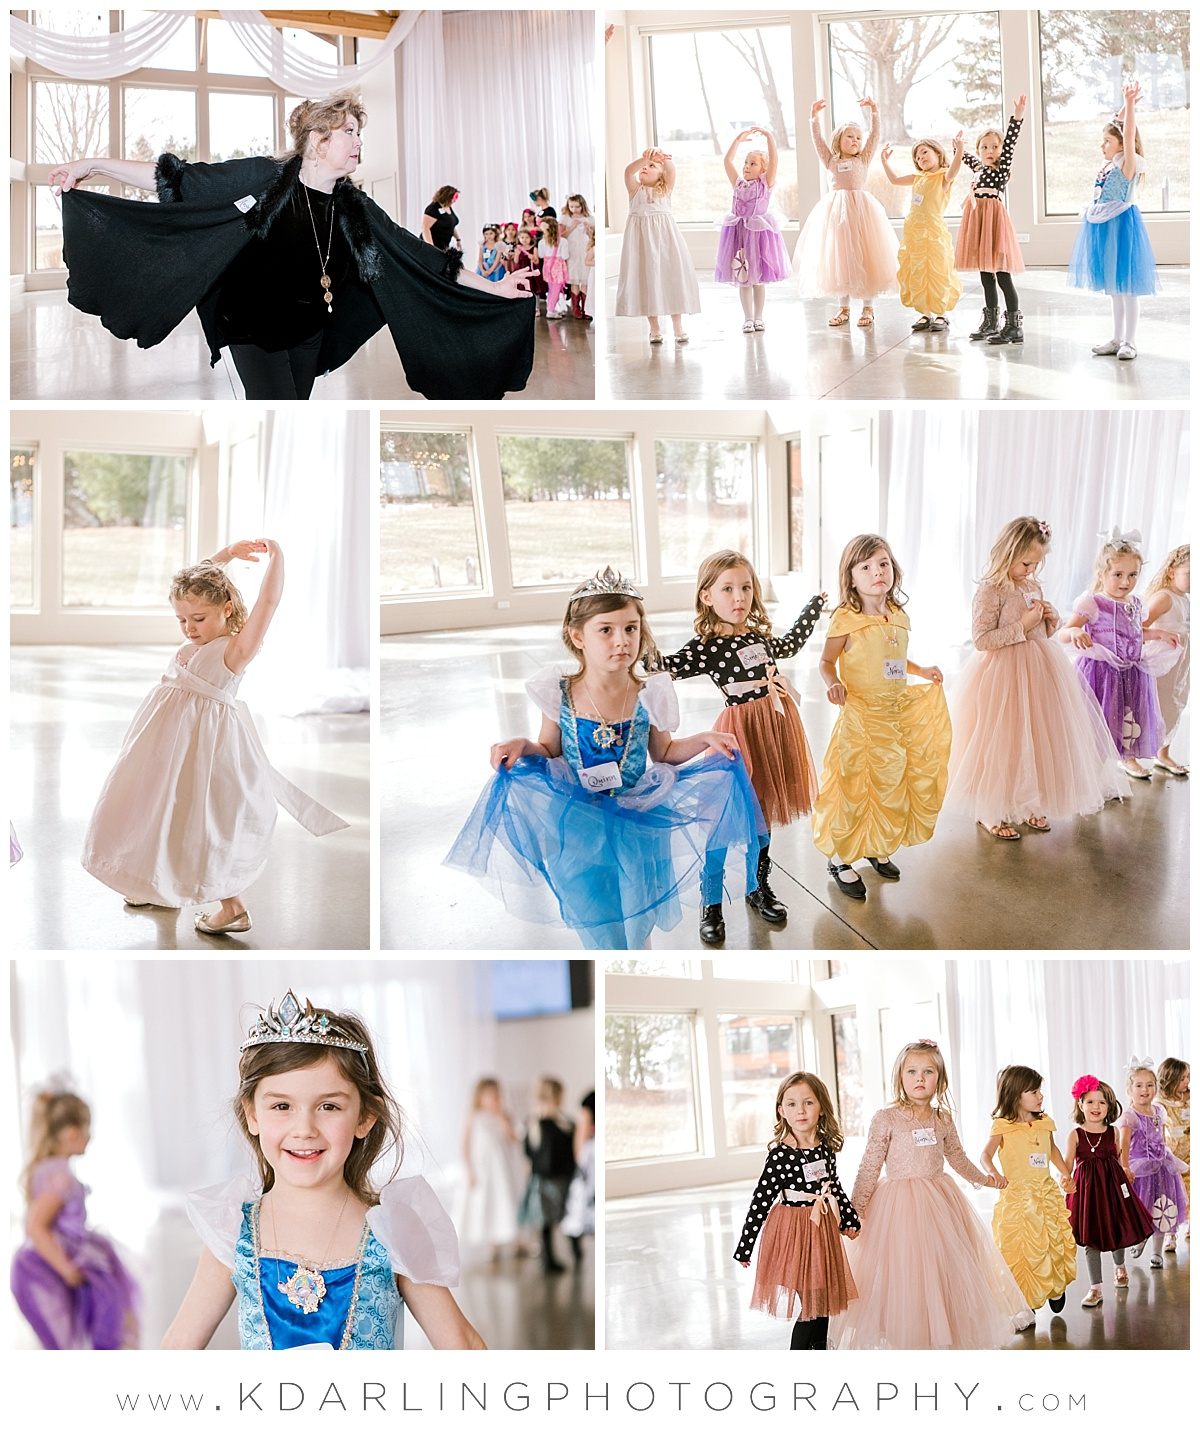 Princess dance lessons at pear tree estate